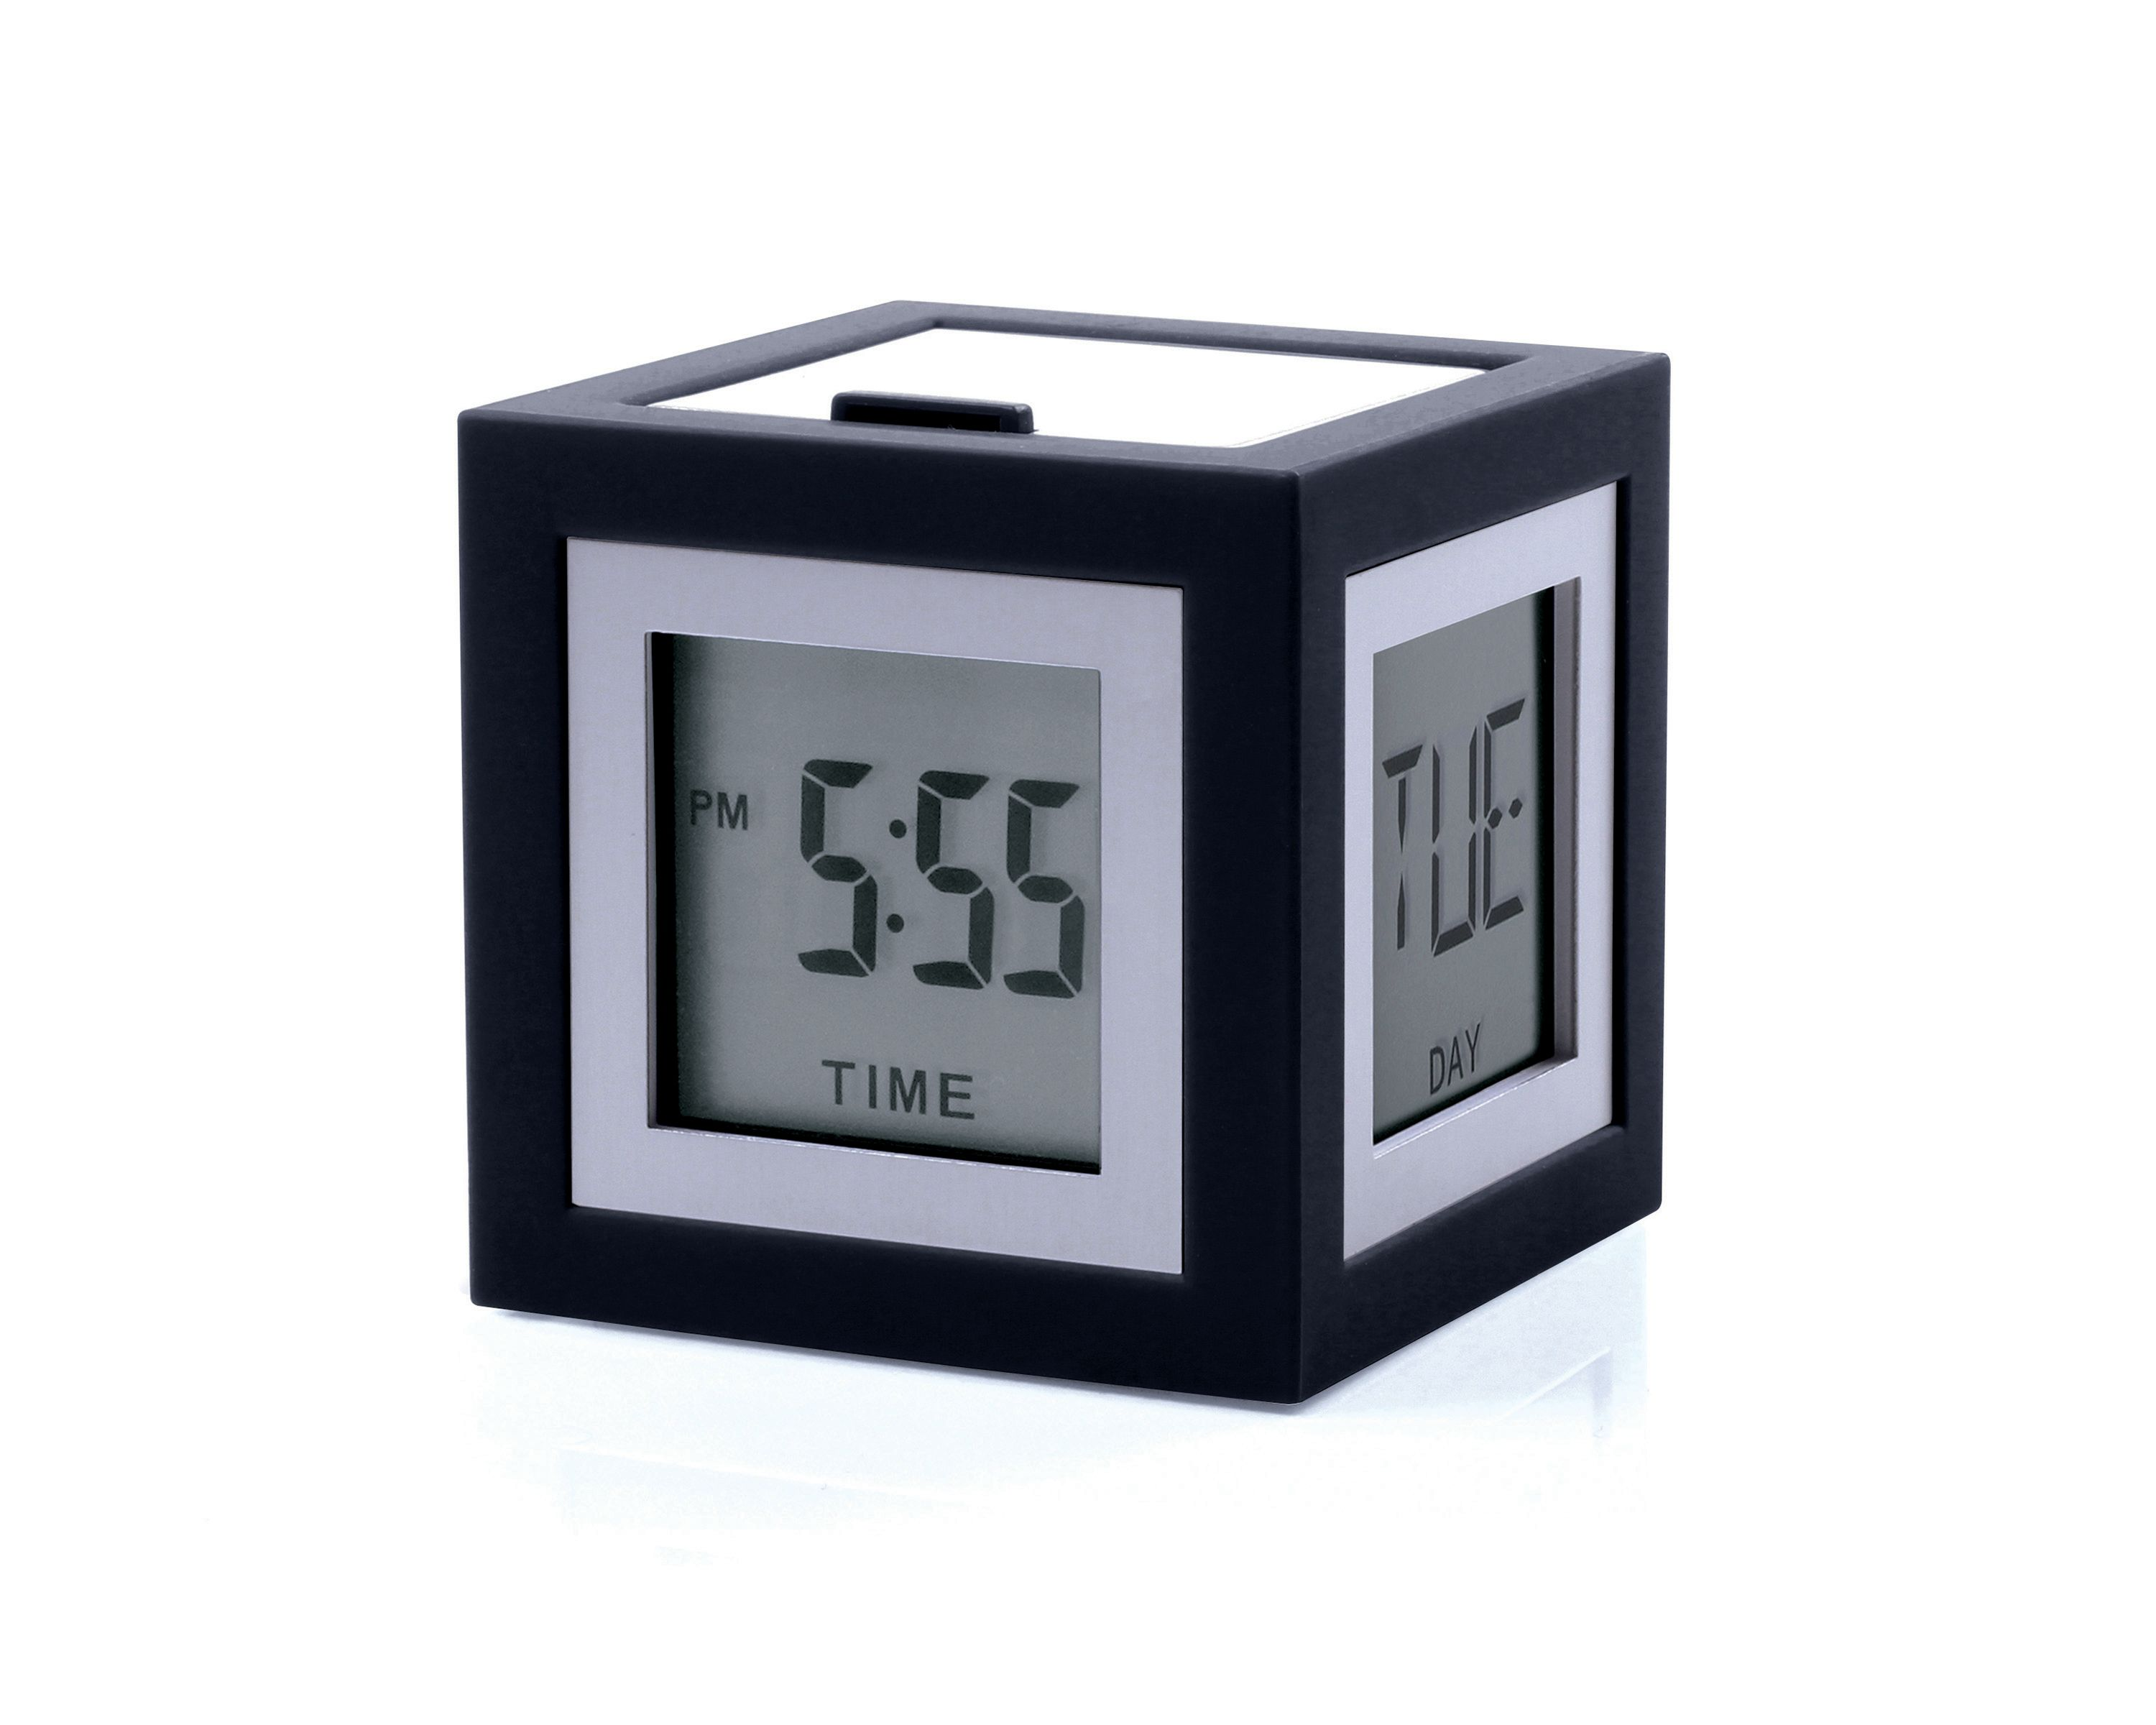 Image of Lexon Cubissimo Alarm Clock, Dark Grey